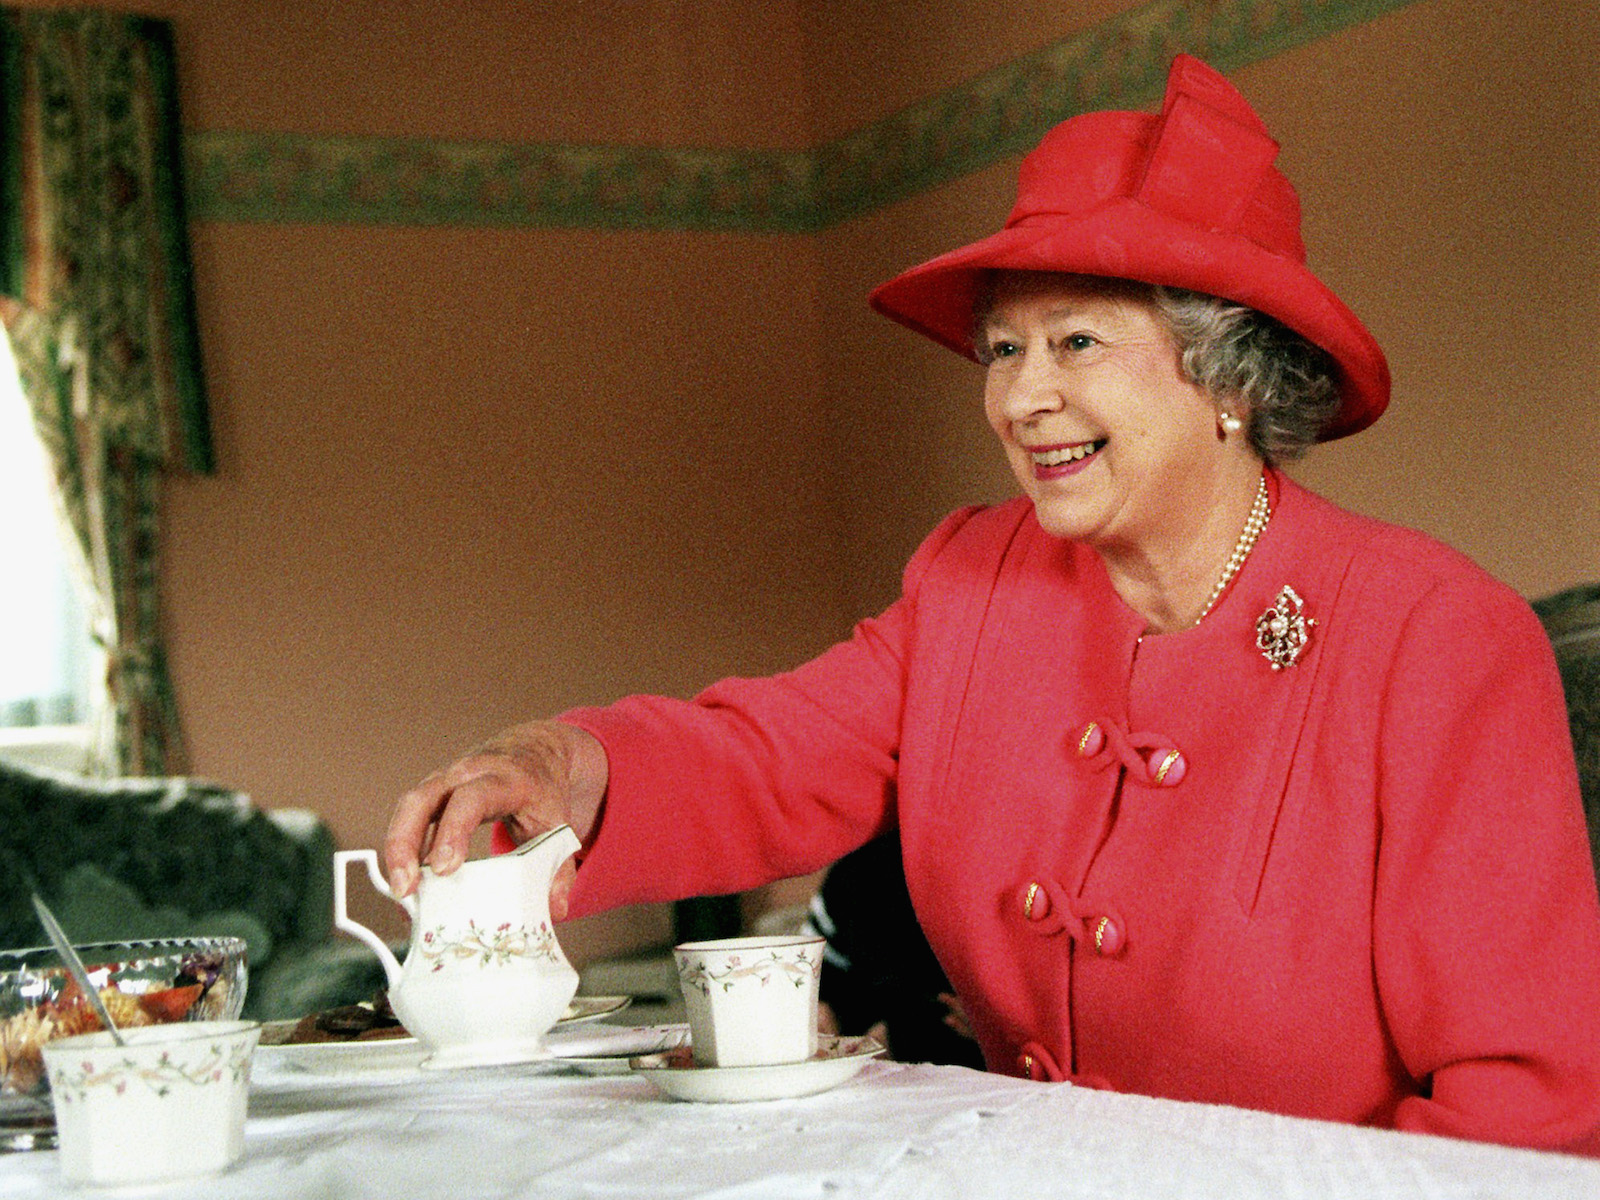 Queen Elizabeth II joins Mrs. Susan McCarron, her ten-year-old son, James, and Housing Manager Liz McGinniss for tea in their home in the Castlemilk area of Glasgow in Scotland on July 7, 1999.